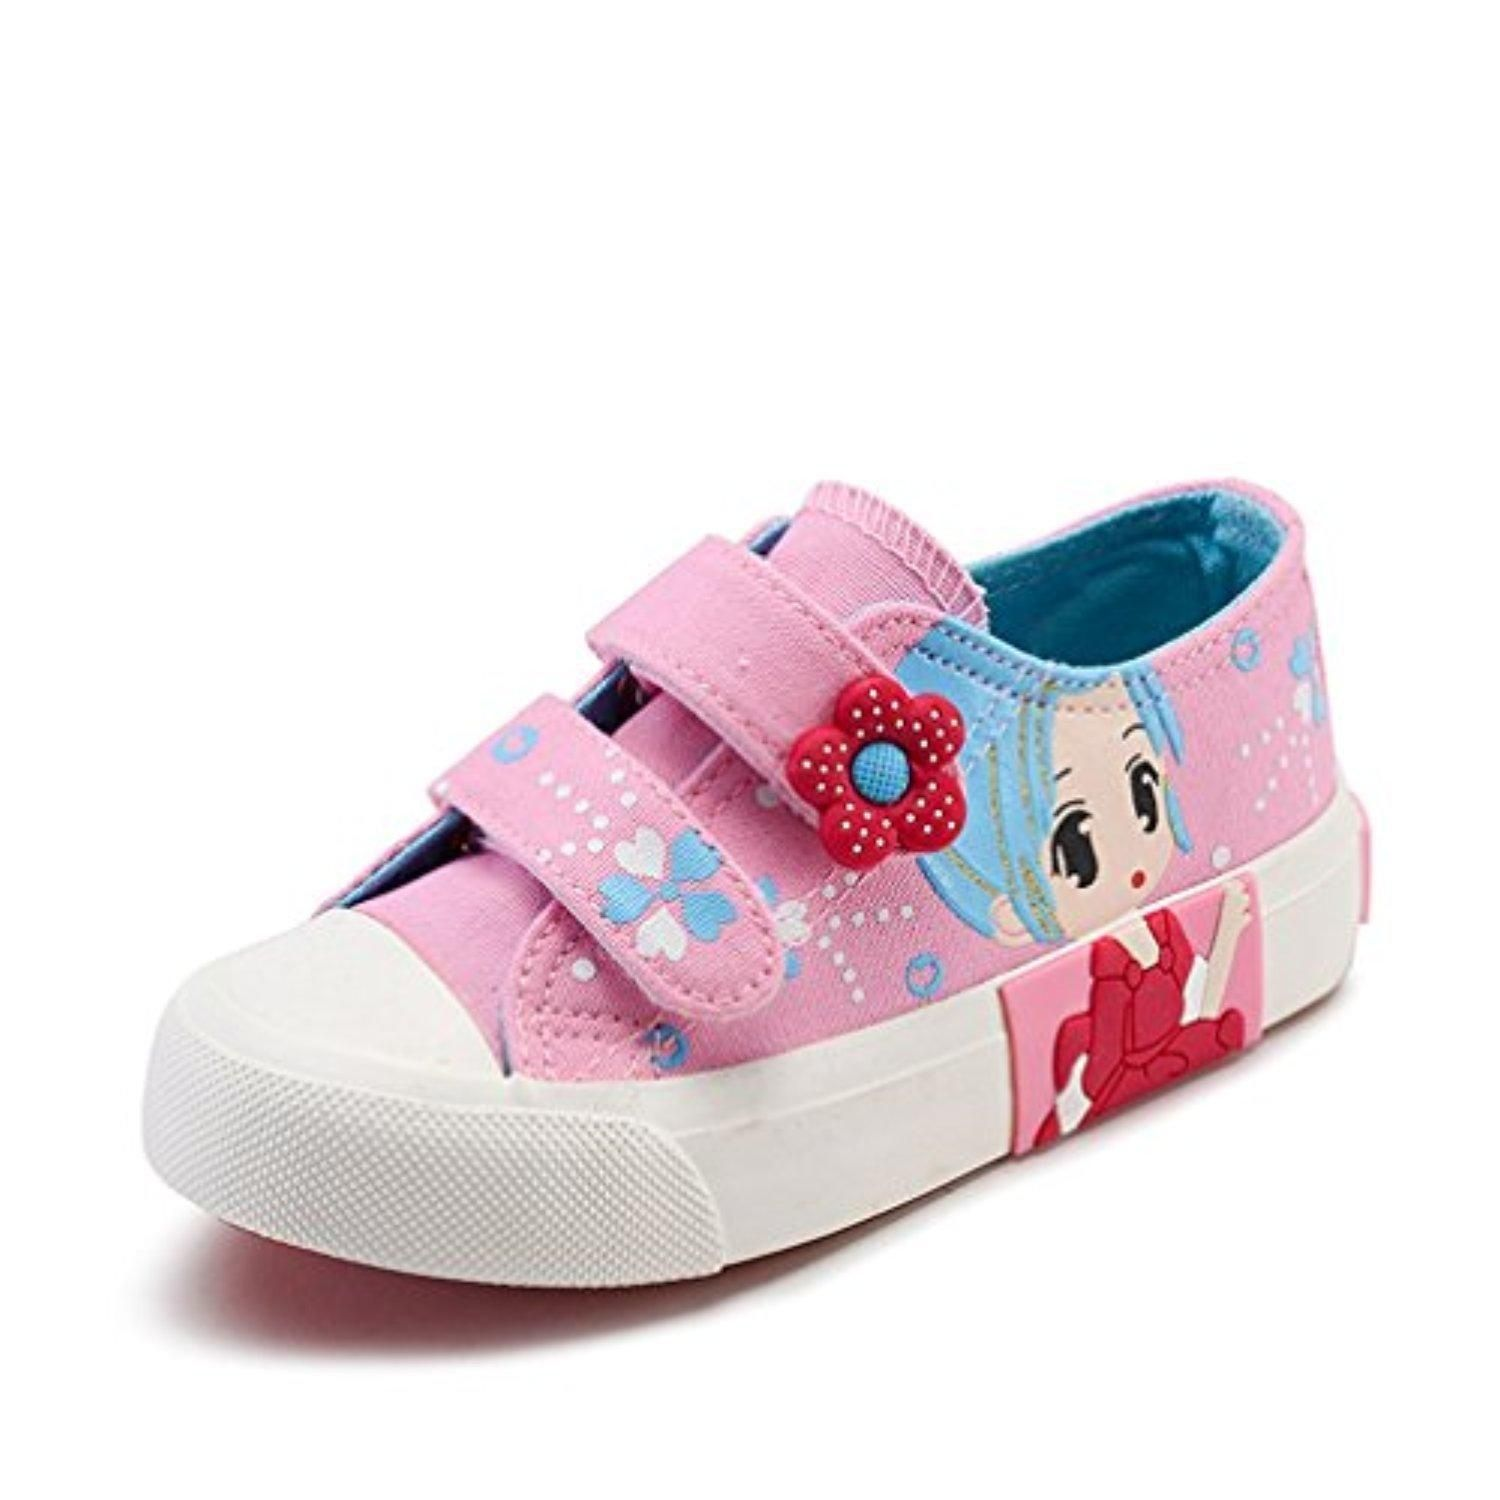 ACETOP fort Girls Velcro Strap Canvas Sneakers Casual Soft Bottom